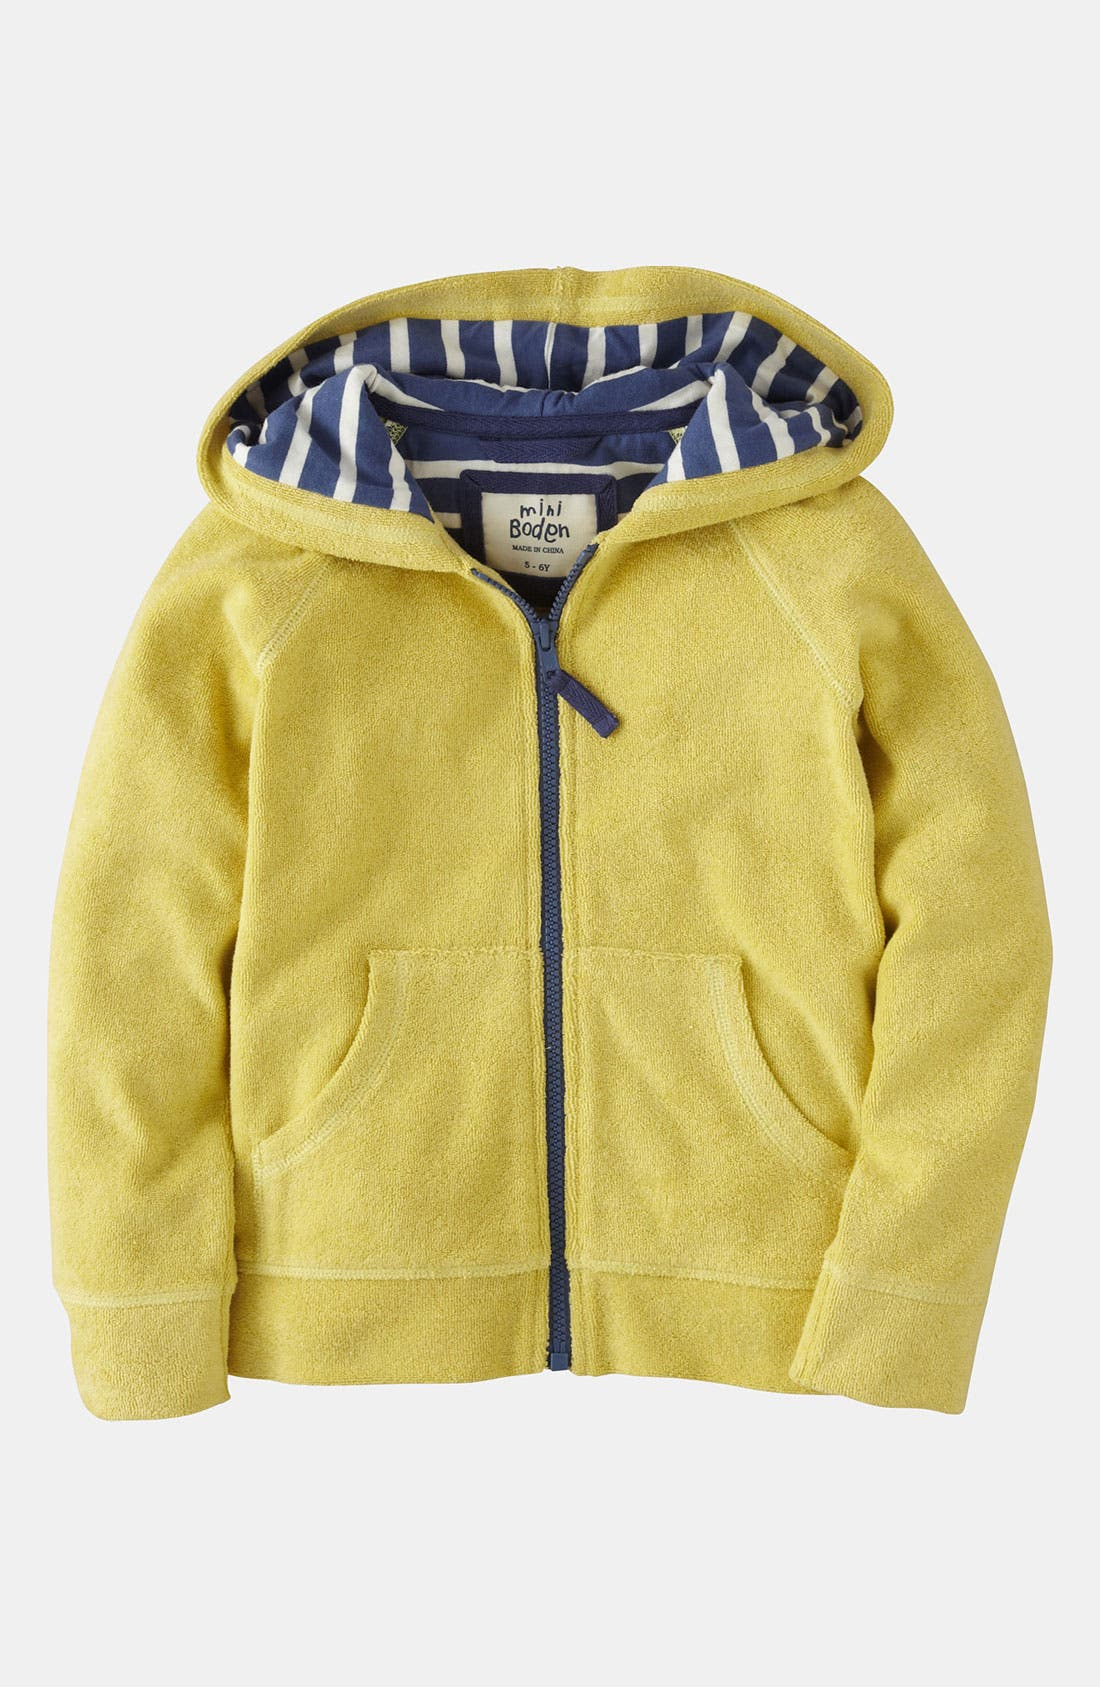 Alternate Image 1 Selected - Mini Boden 'Toweling' Hoodie (Toddler, Little Girls & Big Girls)